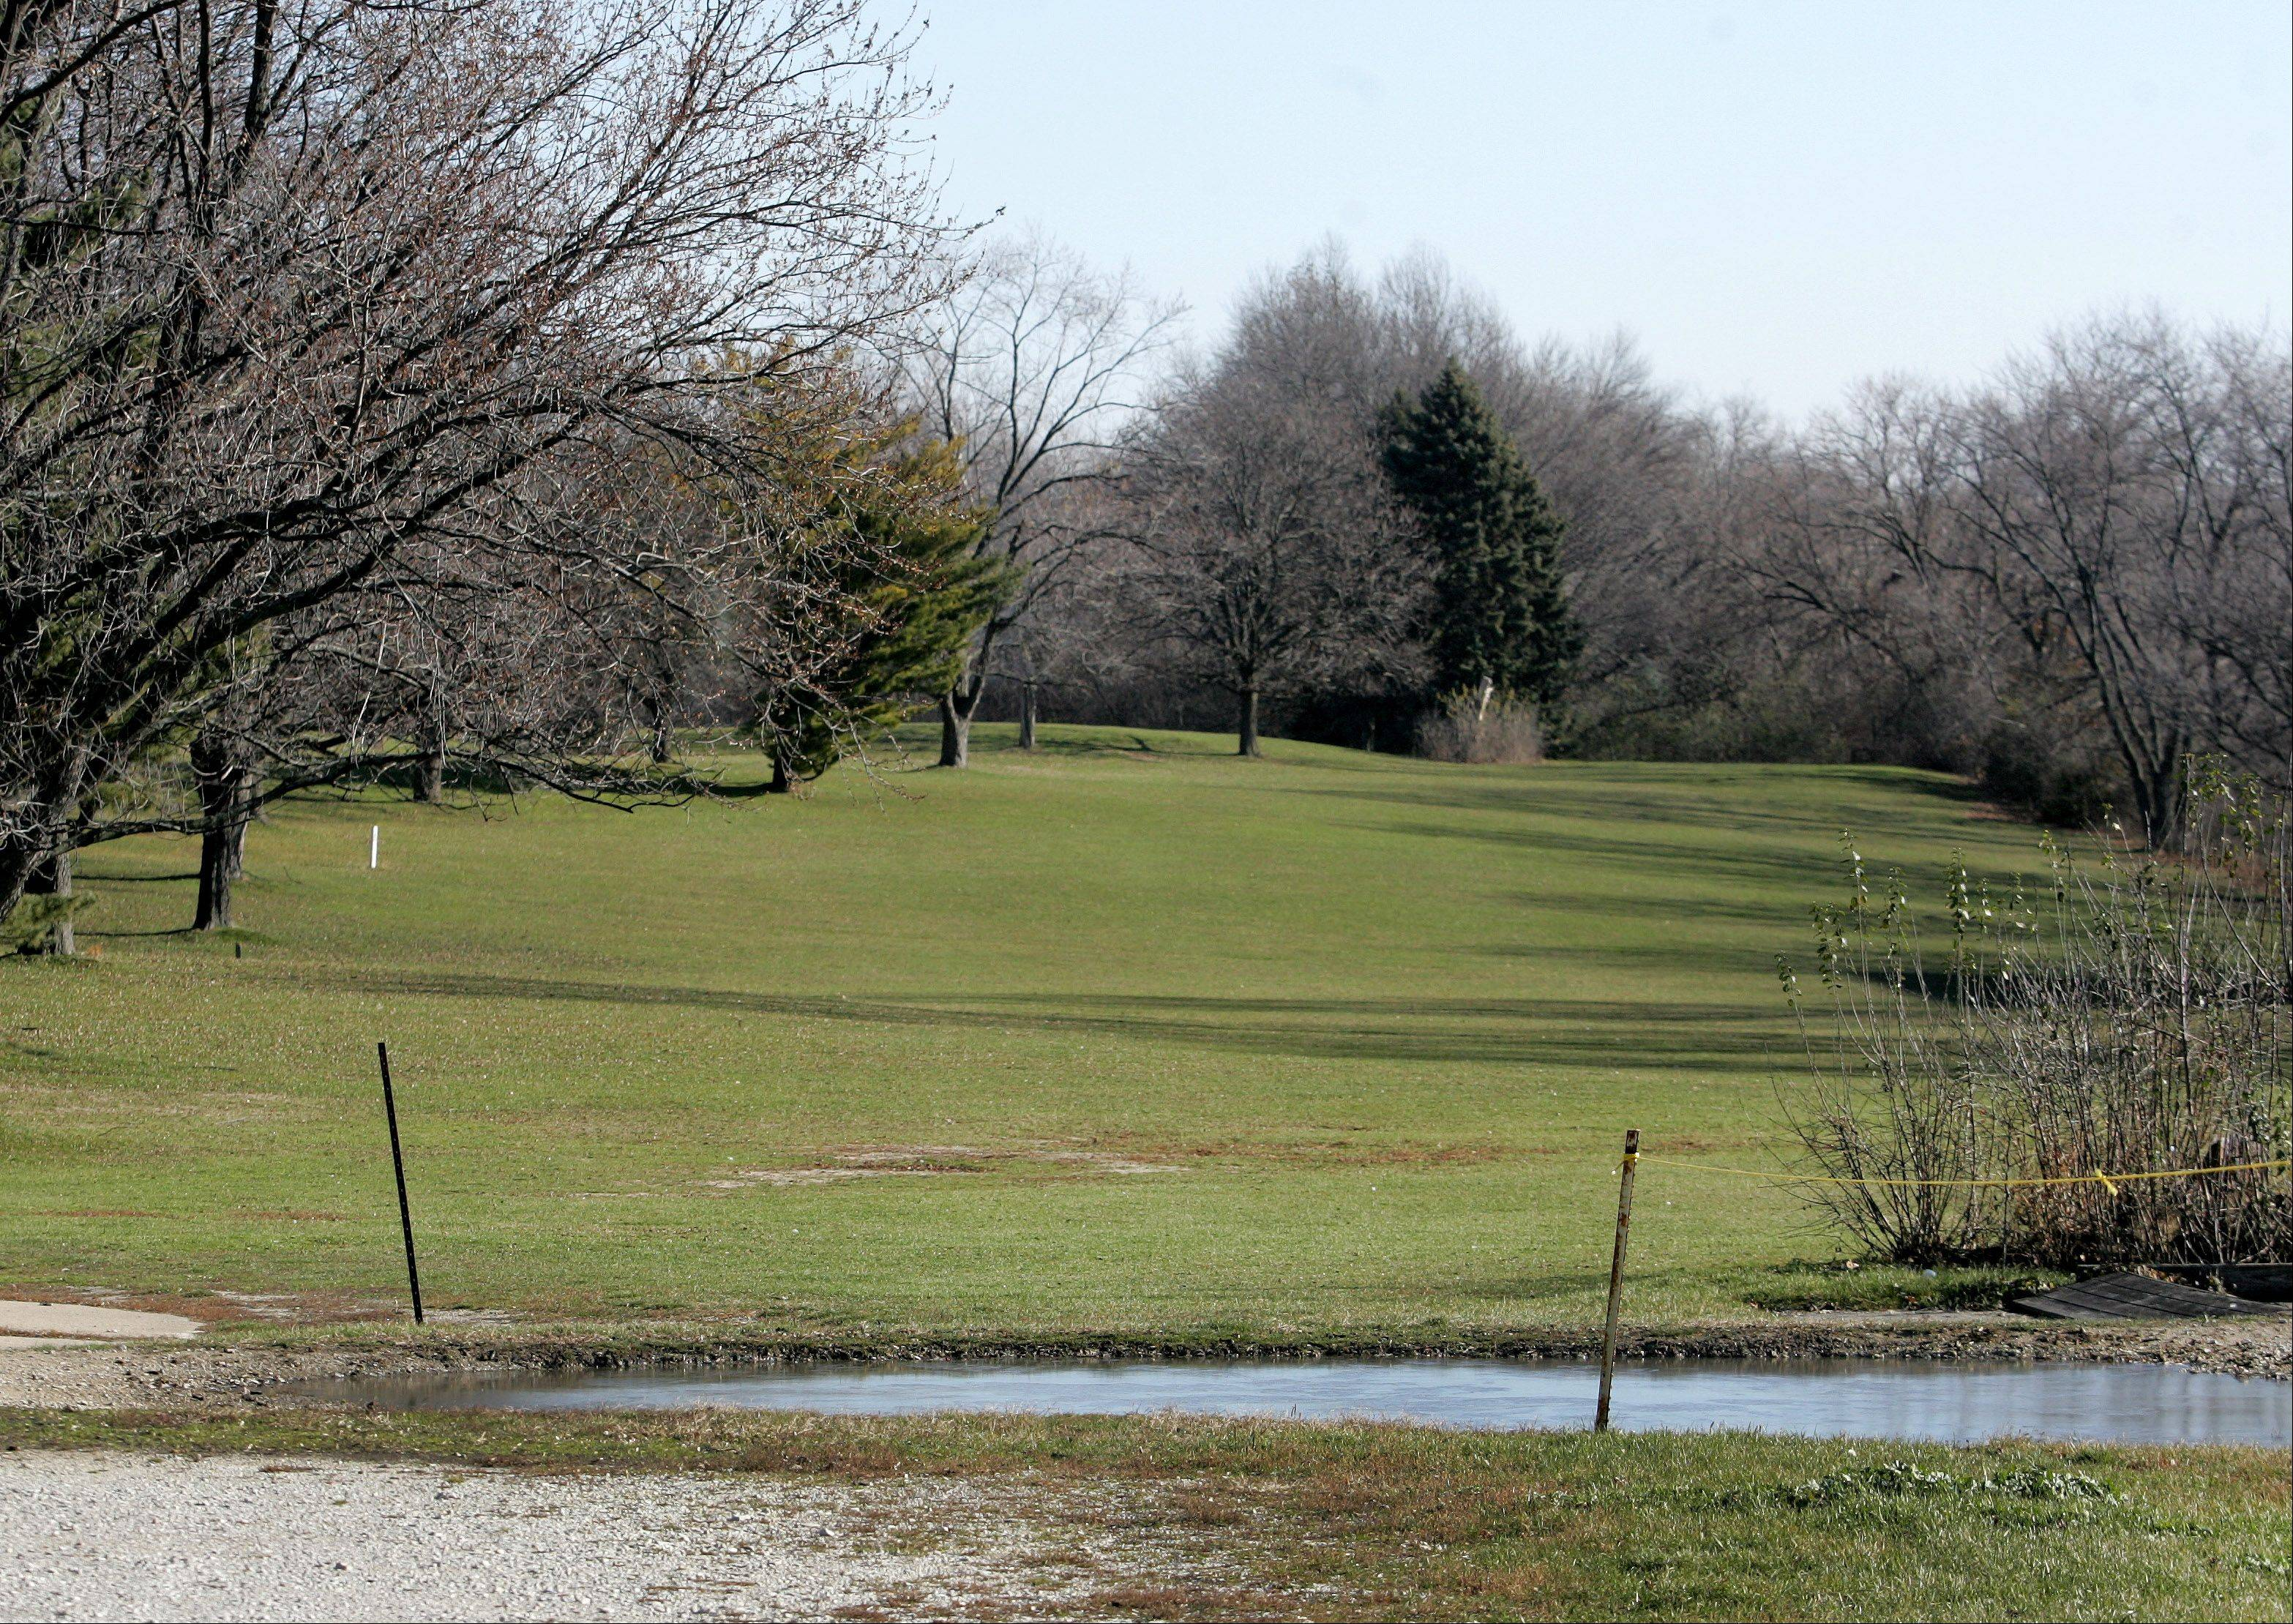 A developer who wants to build apartments and townhouses on what�s currently the Ken-Loch Golf Links near Lombard is hoping DuPage County grants a rezoning request from the property�s owners.